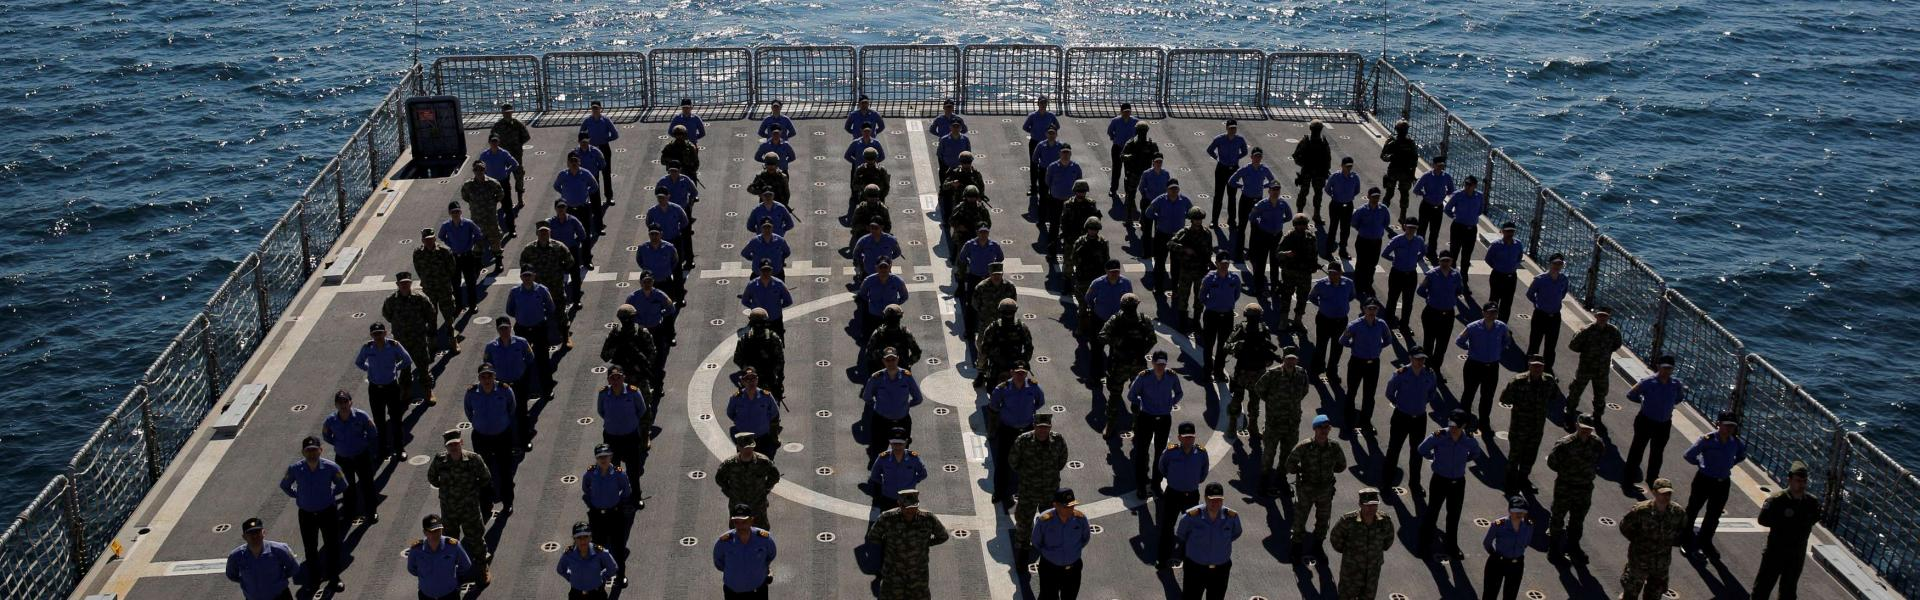 Nearly 80 percent of Turks see U.S., NATO presence in East Med as a threat - pollster